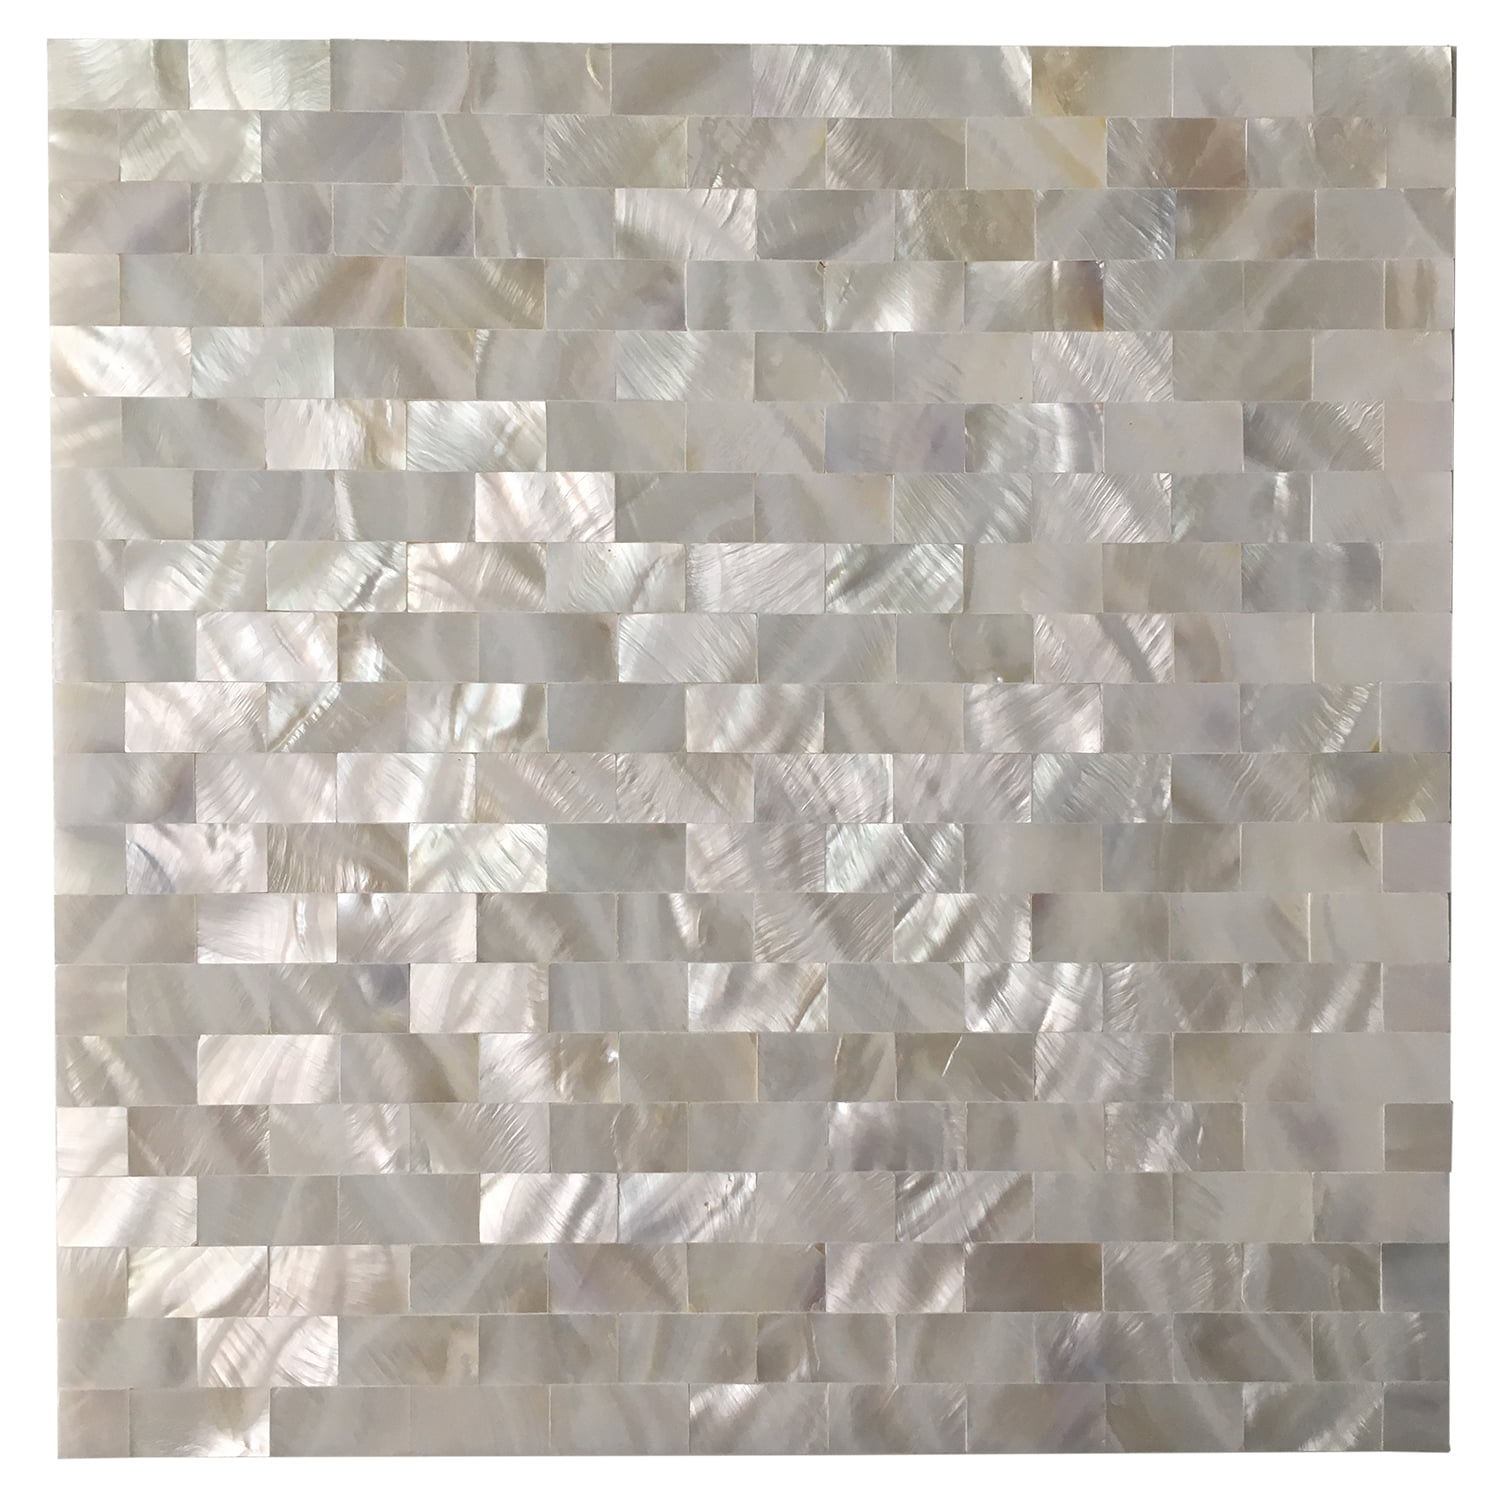 Art3d Mother Of Pearl White Shell Mosaic Tile For Kitchen